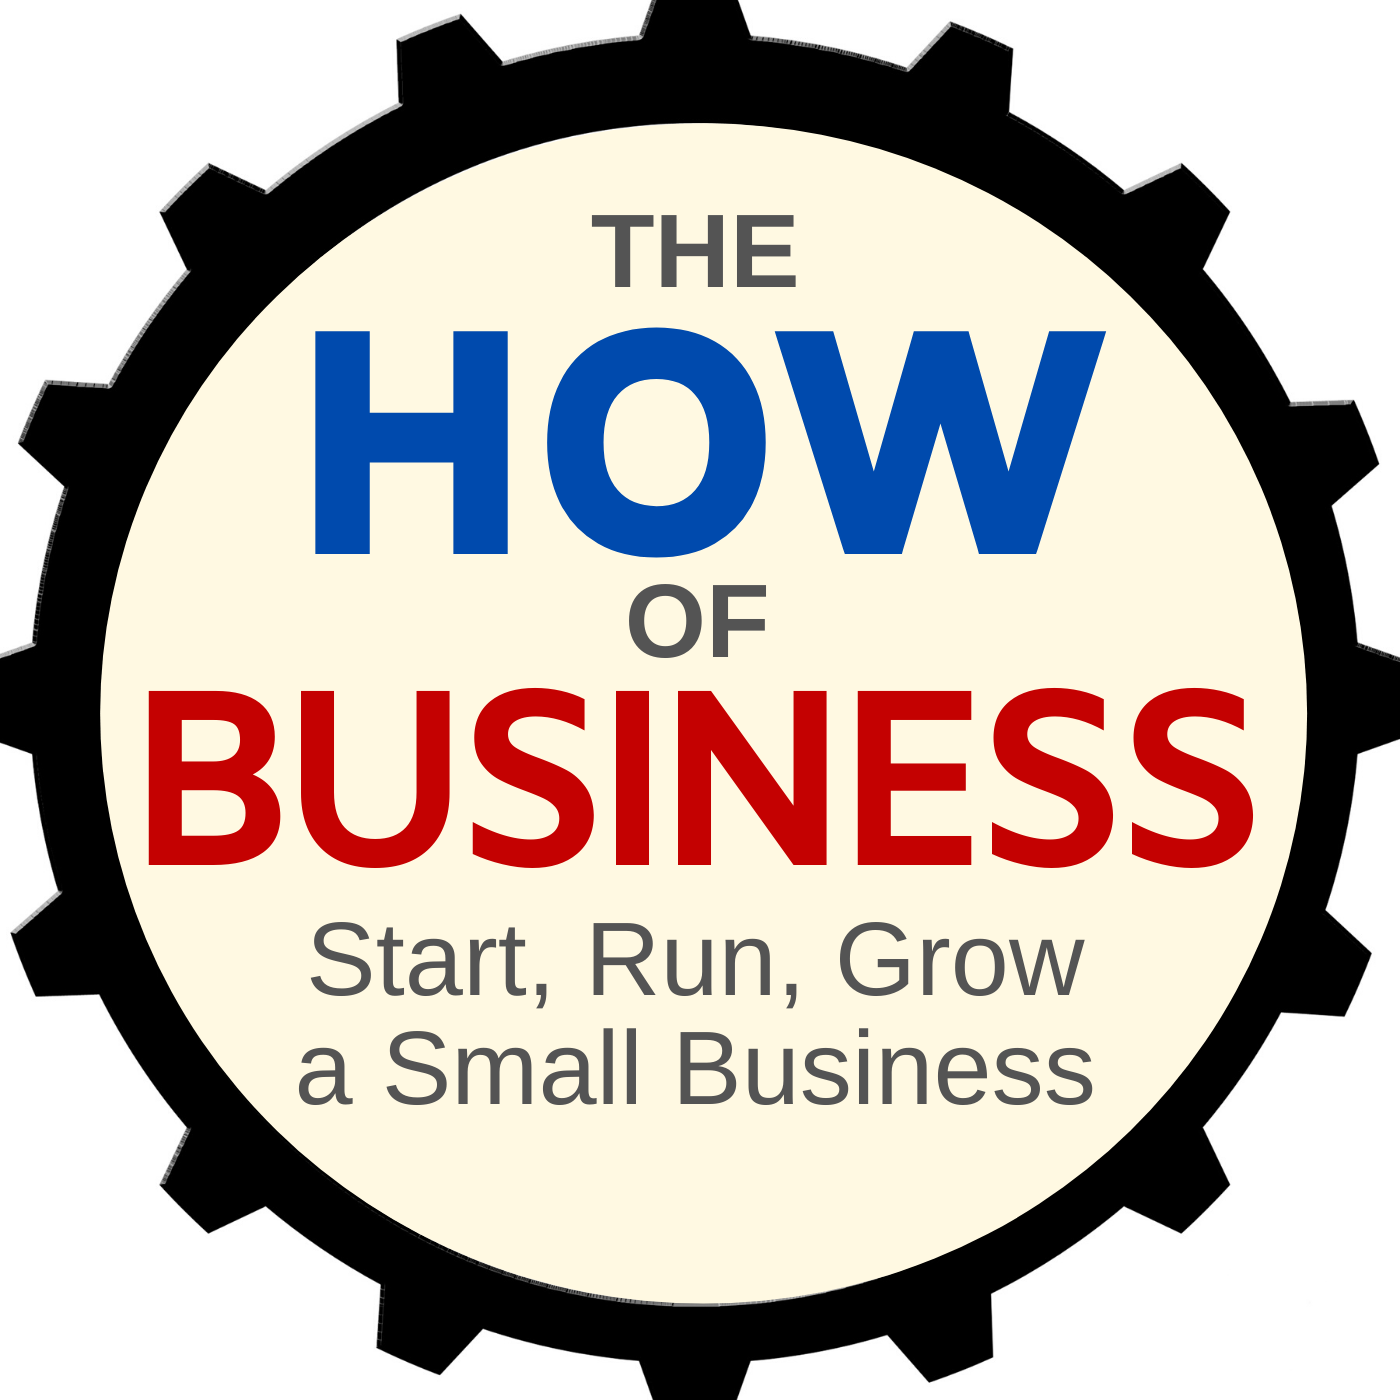 The How of Business - How to start, run & grow a small business.